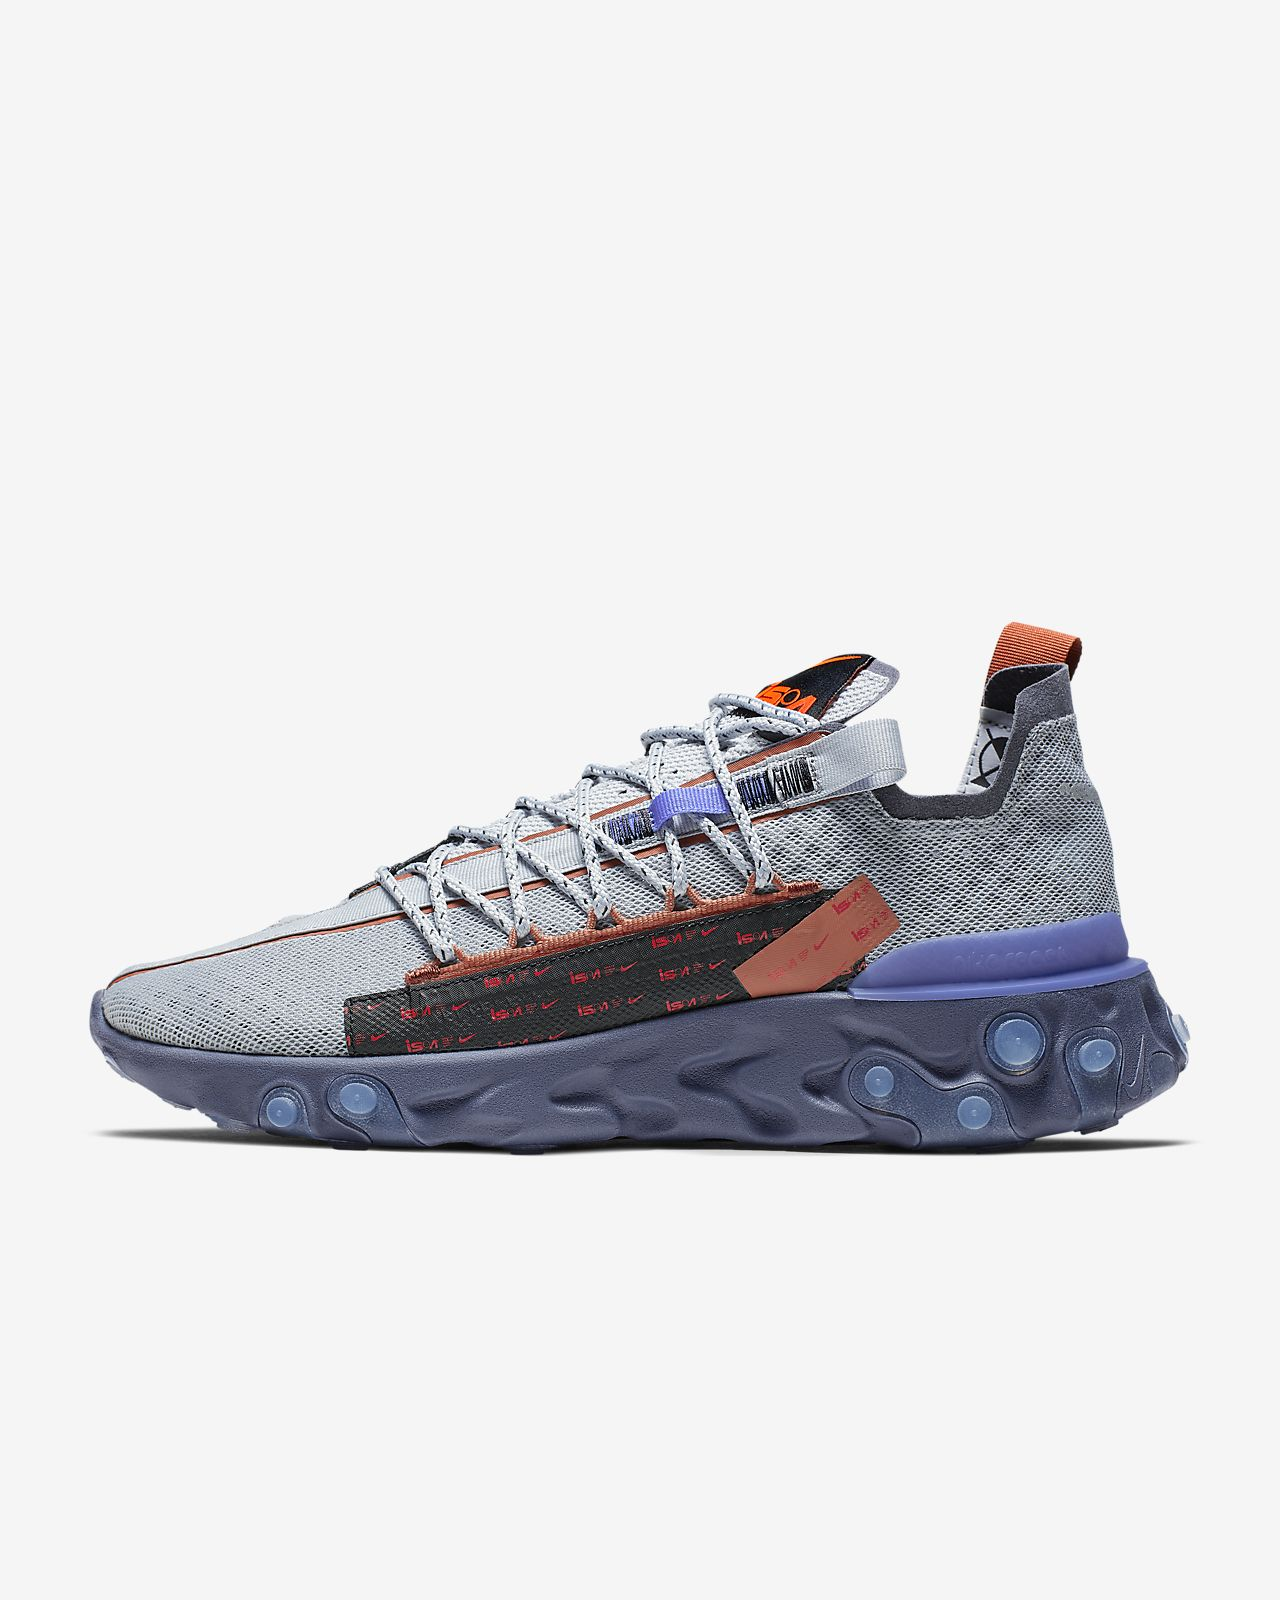 Nike ISPA React Men's Shoe